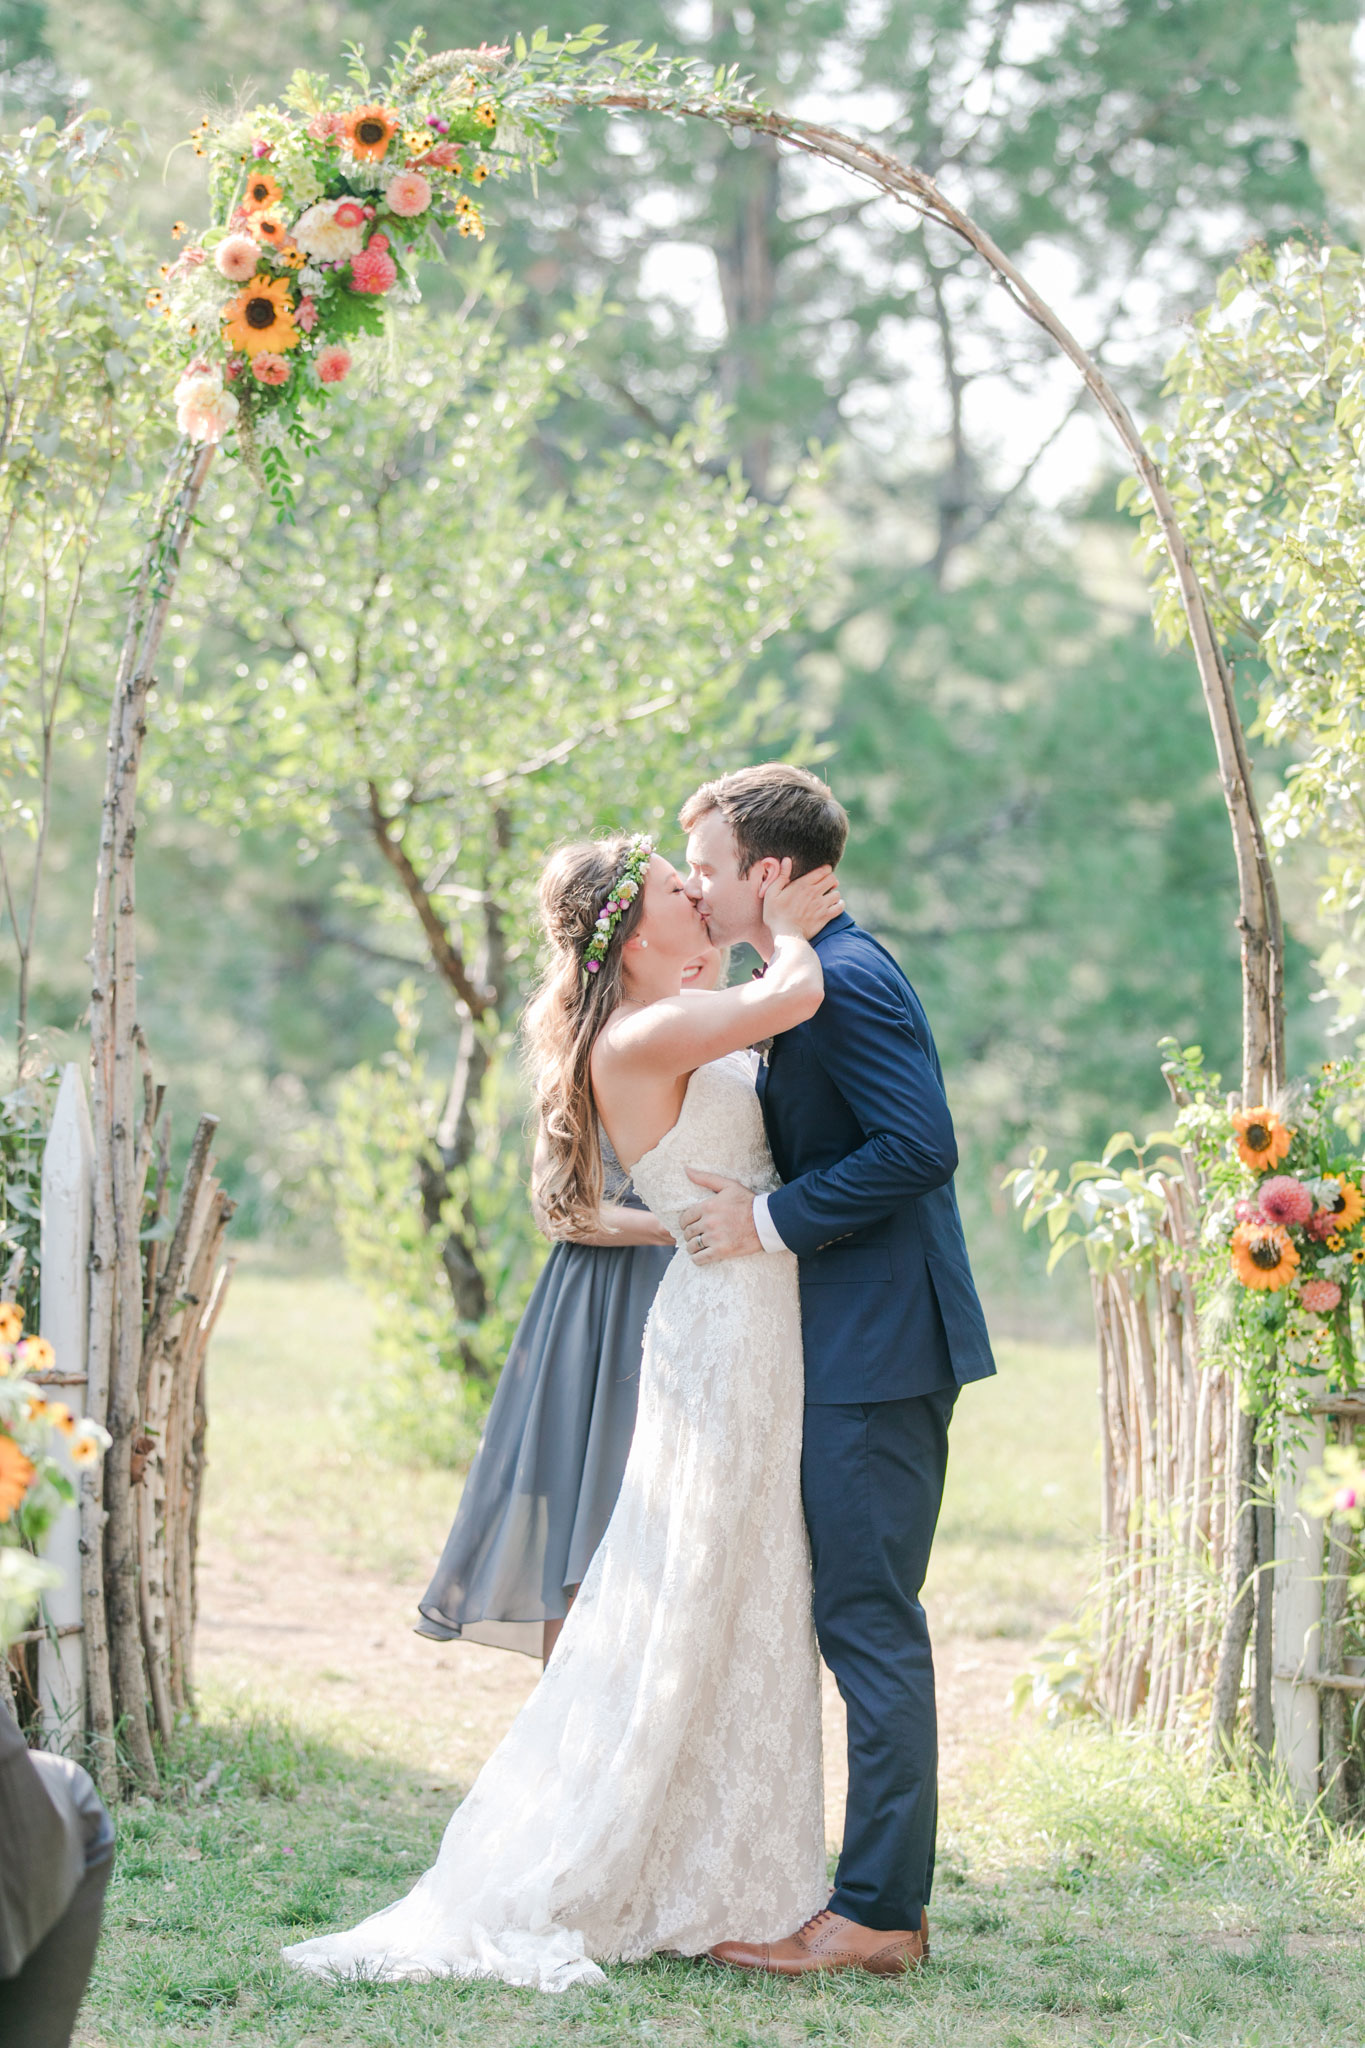 I Do | A Boho Garden Wedding in Colorado